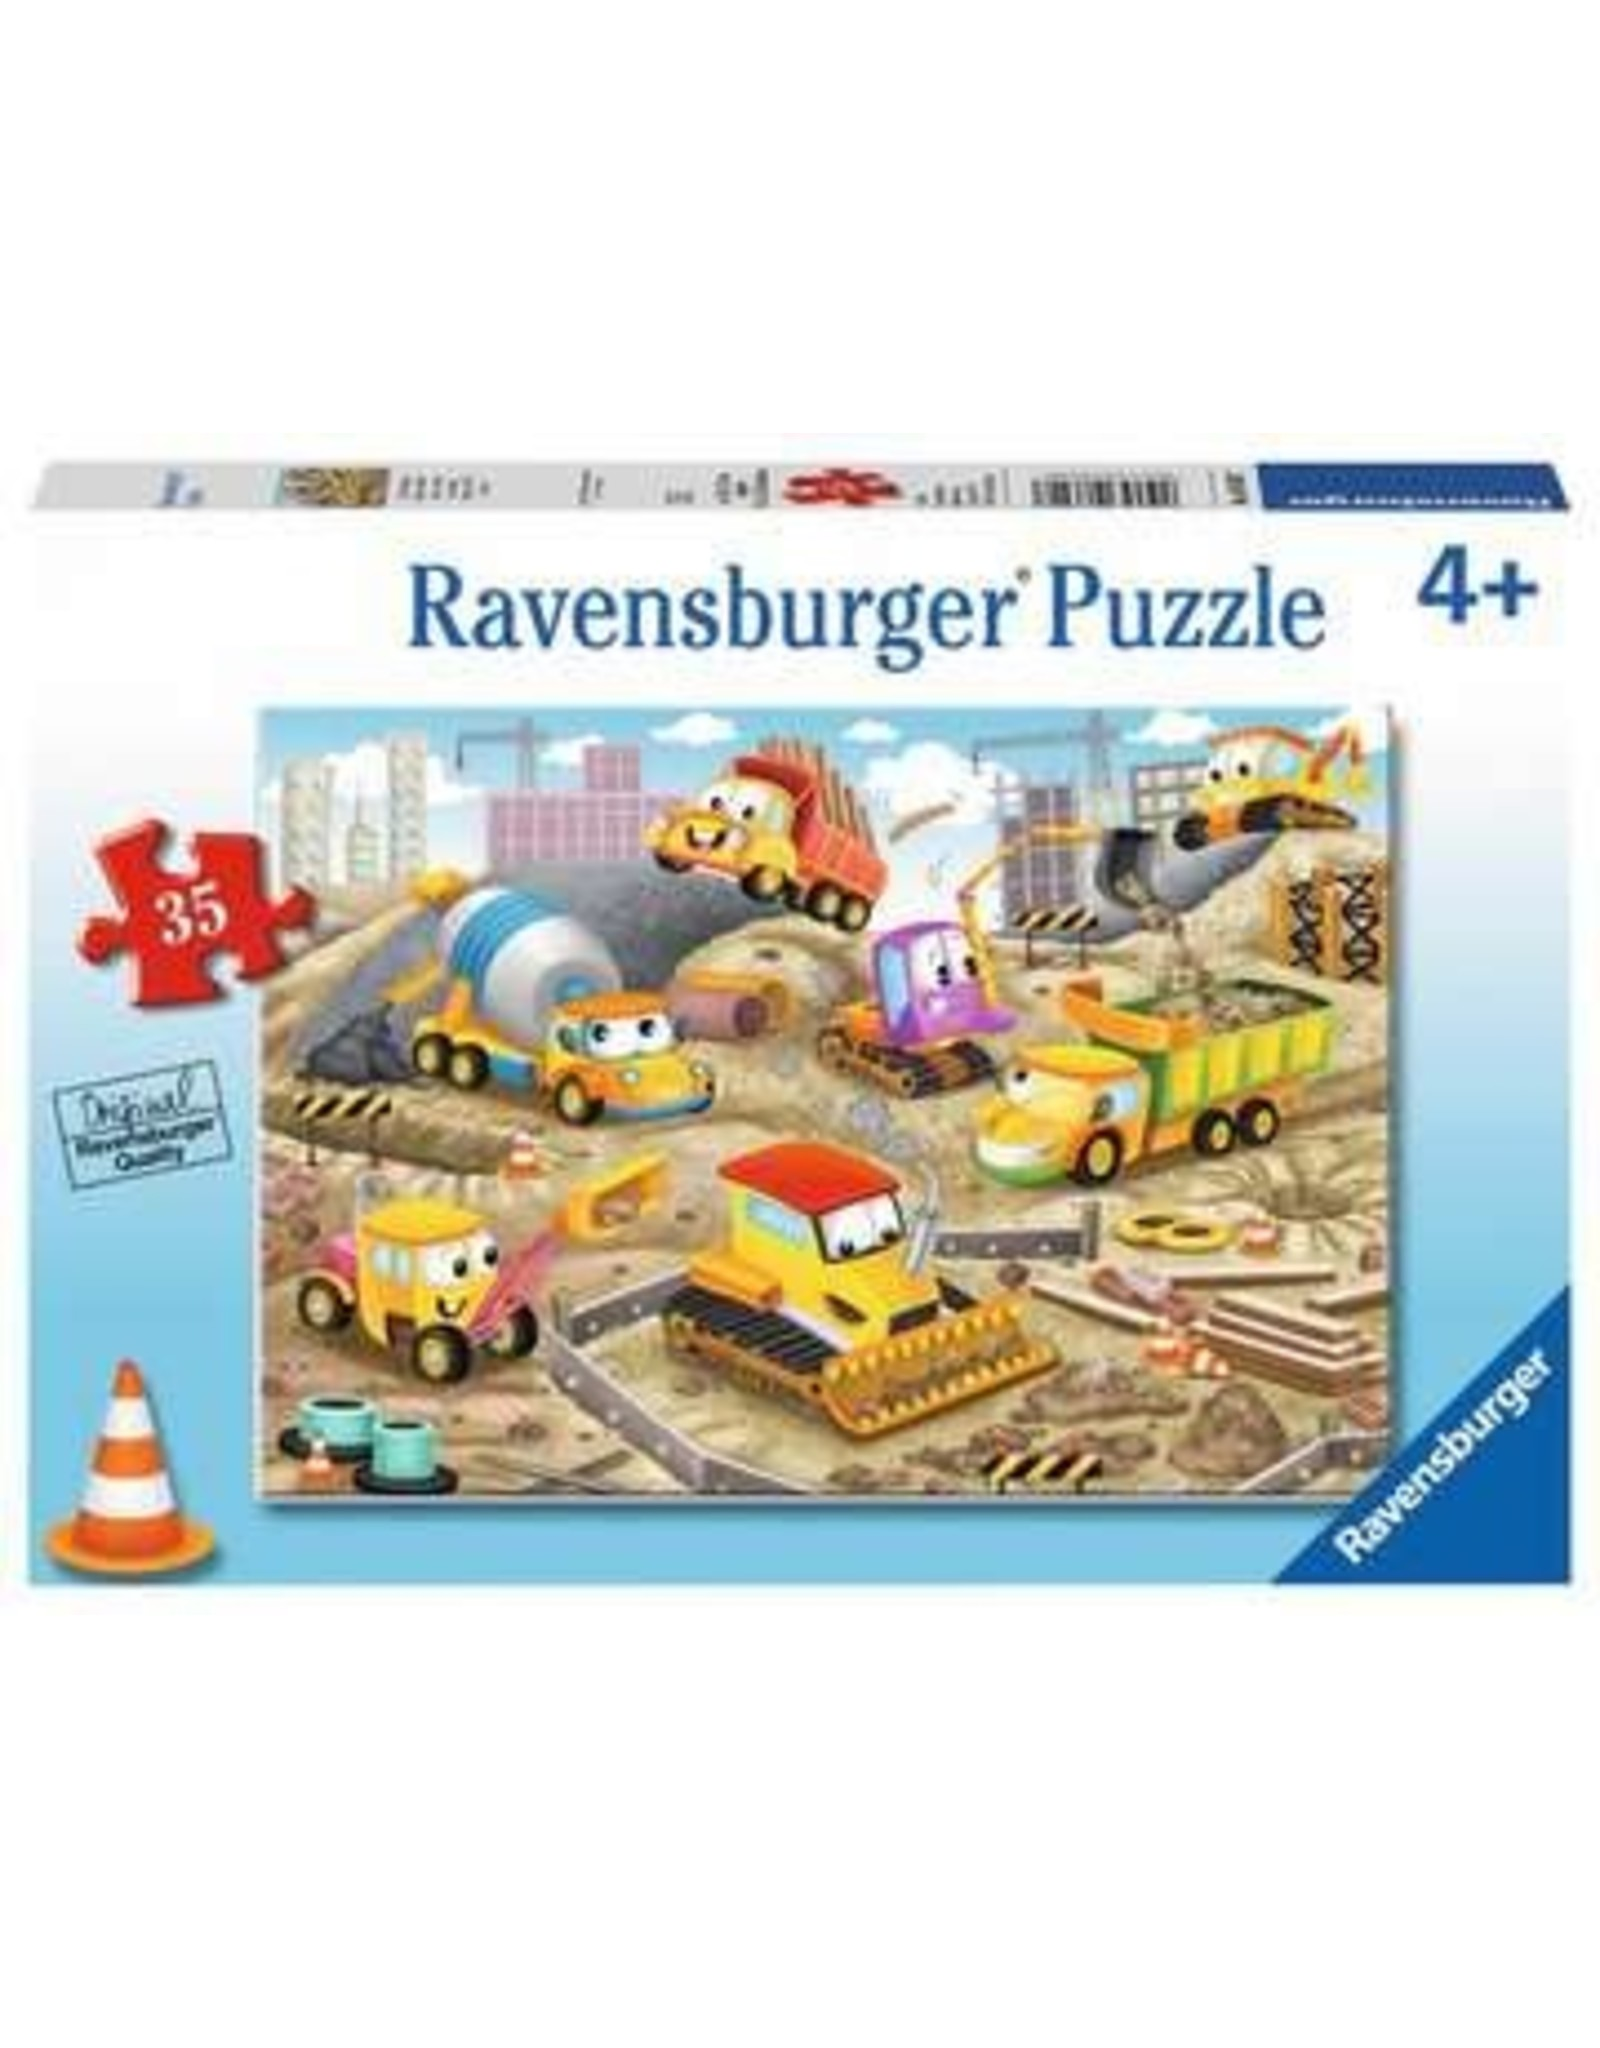 Ravensburger 35 pcs. Raise The Roof Puzzle